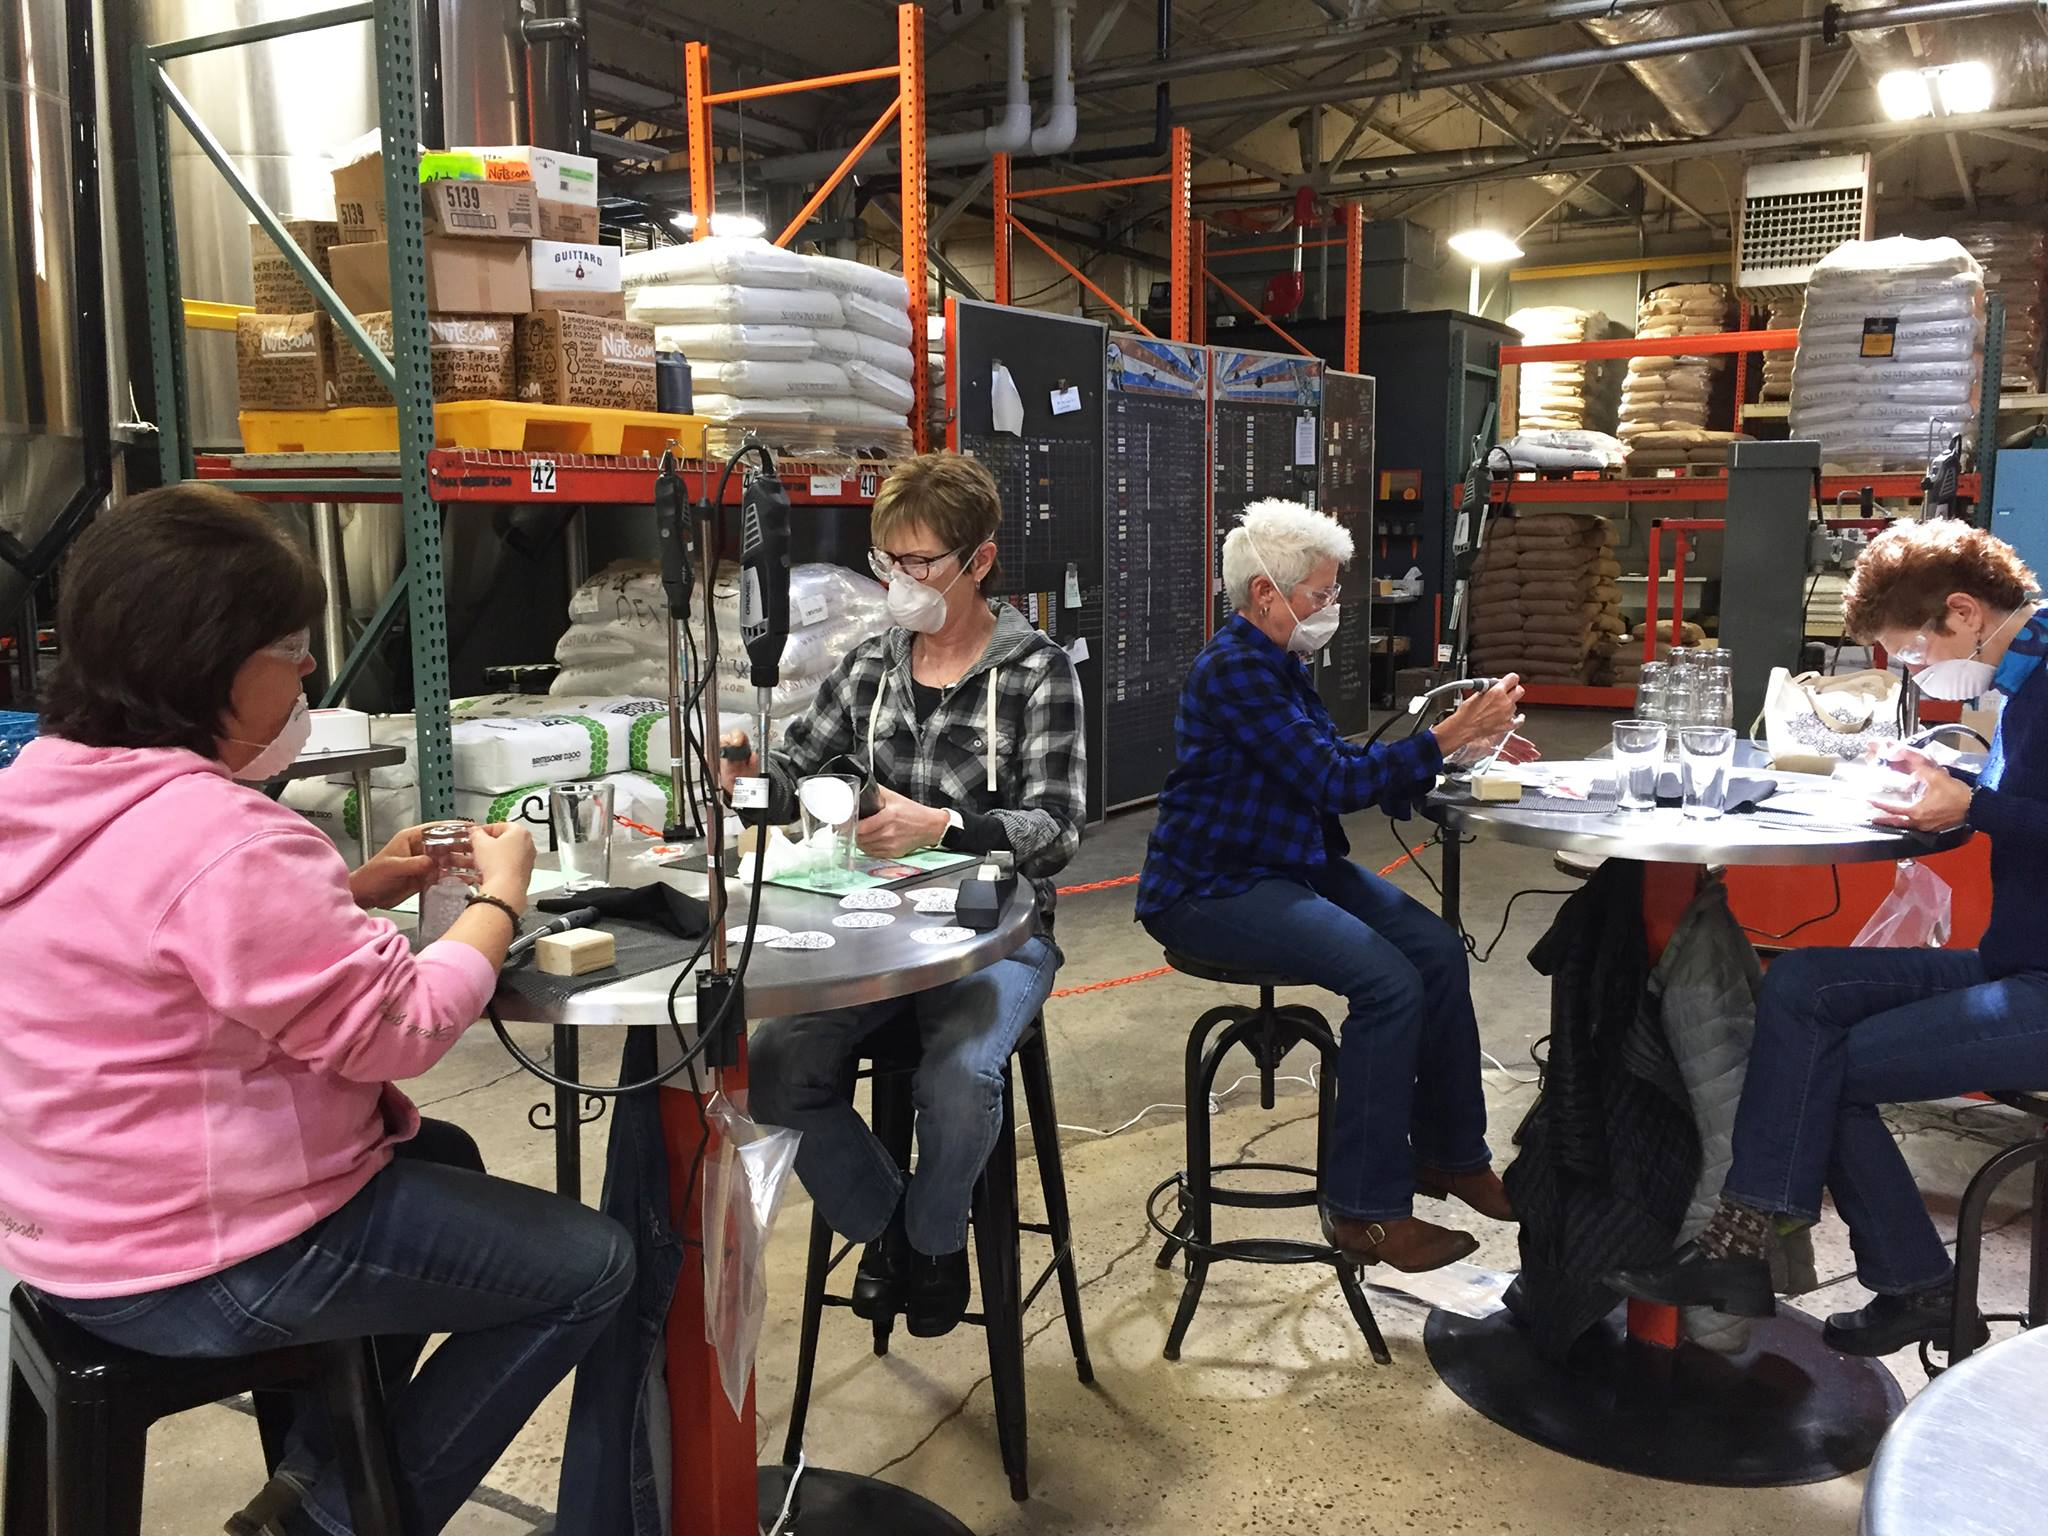 Glass Etching Class - June 30th, 1:00 pm or 3:00 pm at SunKing Brewery